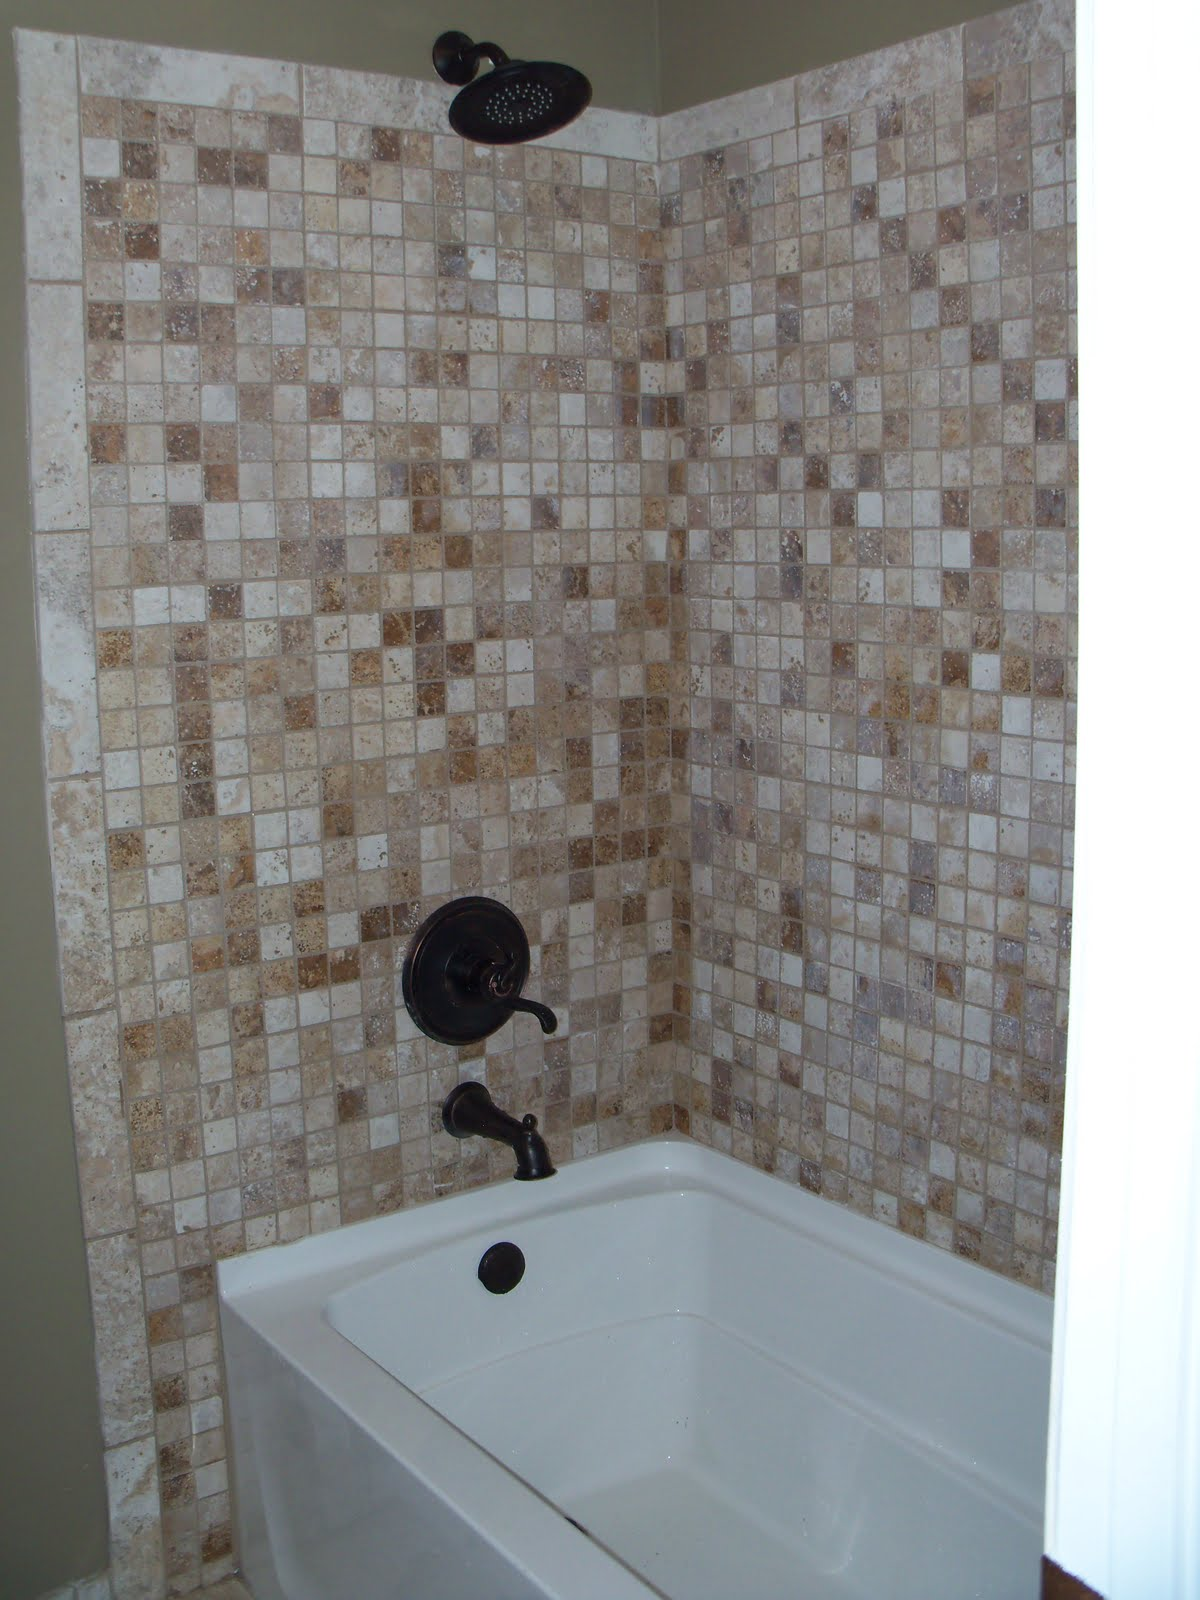 High Quality St Paul Bathtub Surround Installation Tile   YouTube